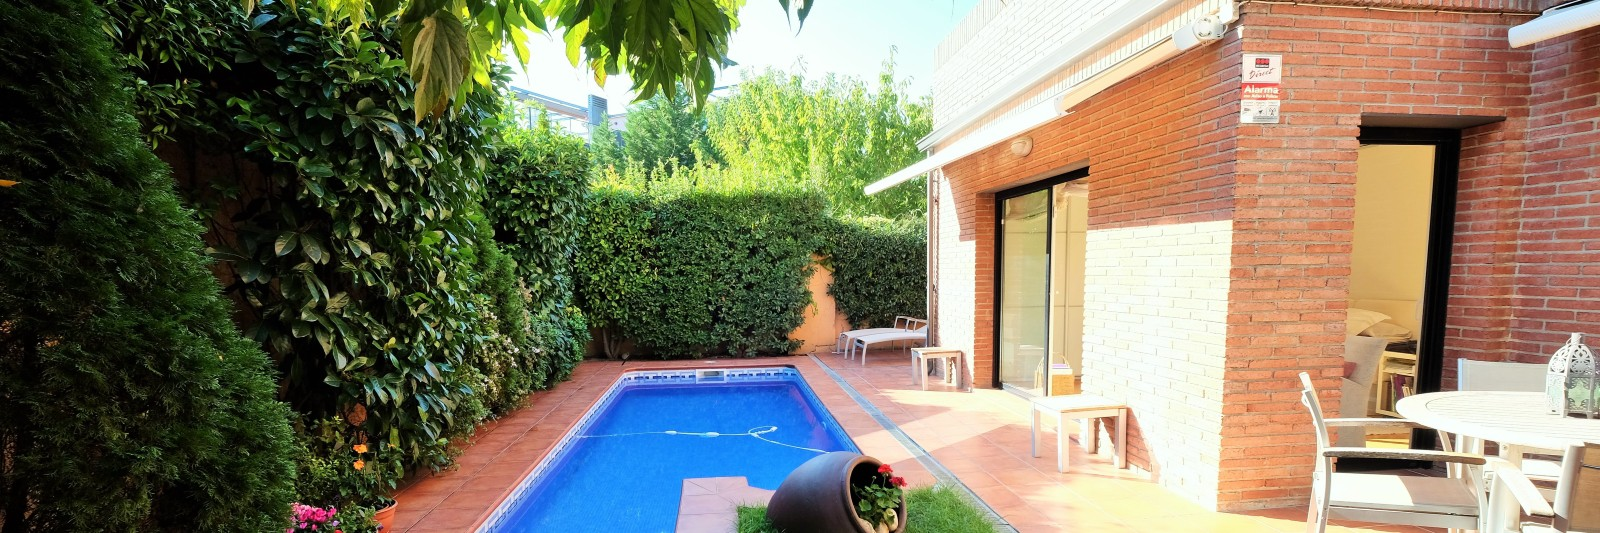 MG Inmobiliaria Sant CUgat - camps